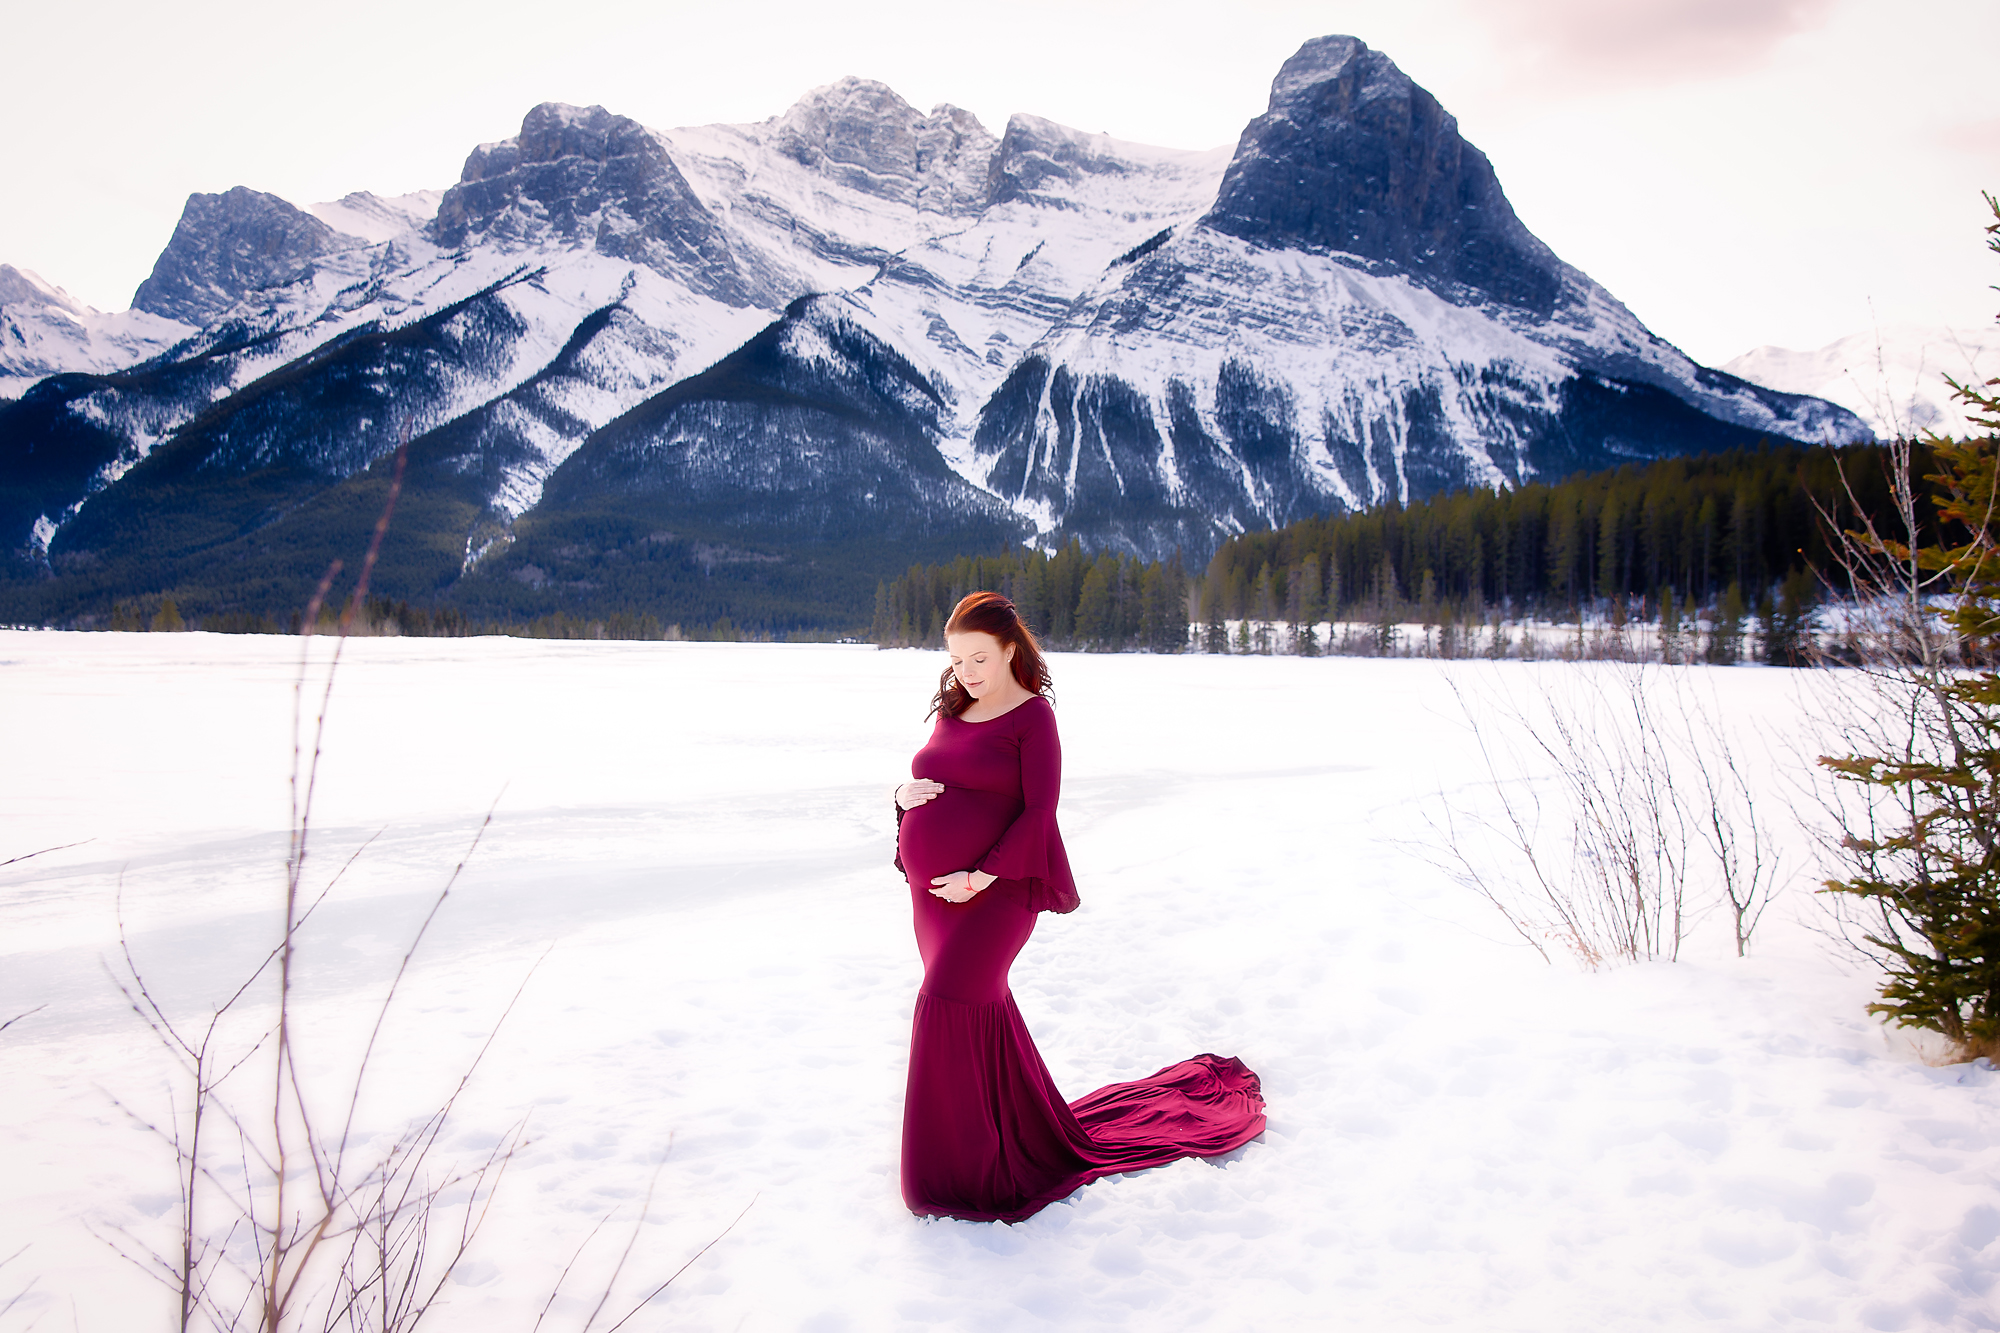 Mountain Maternity session in Canmore, Alberta, Canada. Mom-to-be is standing in front of Rocky Mountains on a snow, wearing a beautiful red gown. Calgary and Airdrie, Alberta maternity photographer - Milashka Photography